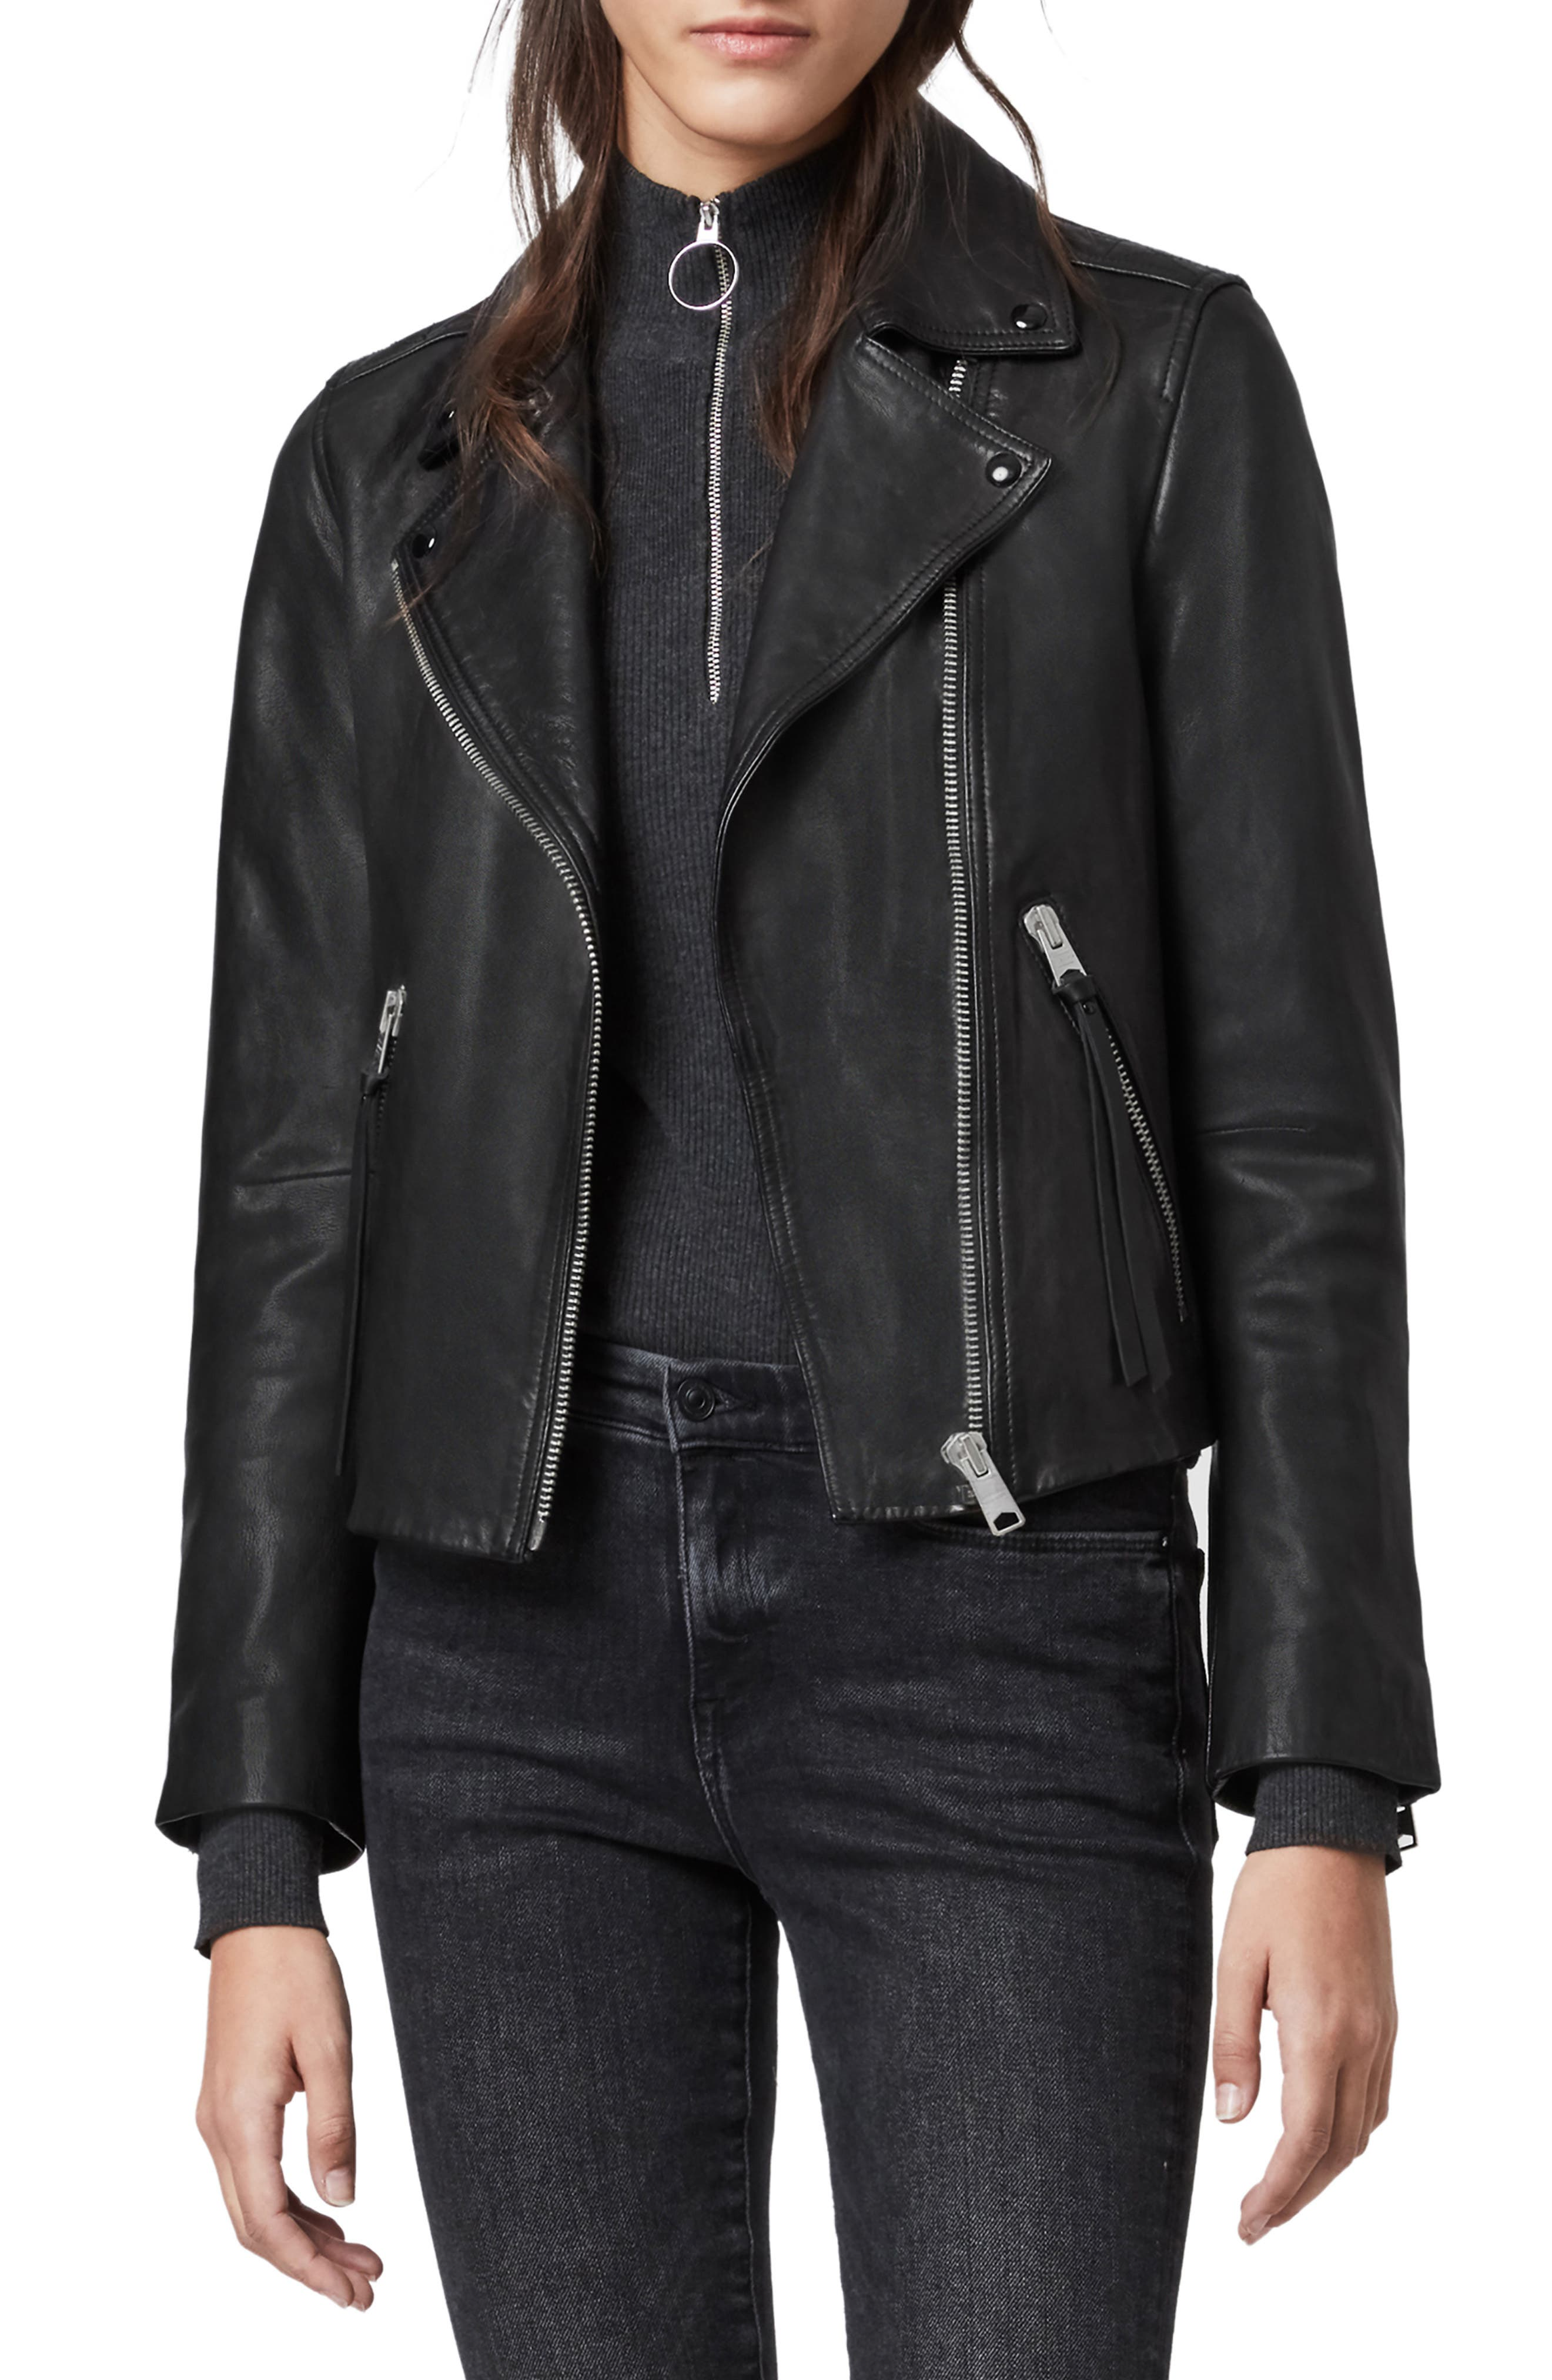 Women Leather Jacket Tops Black Real Leather Designer Outerwear Leather Jacket